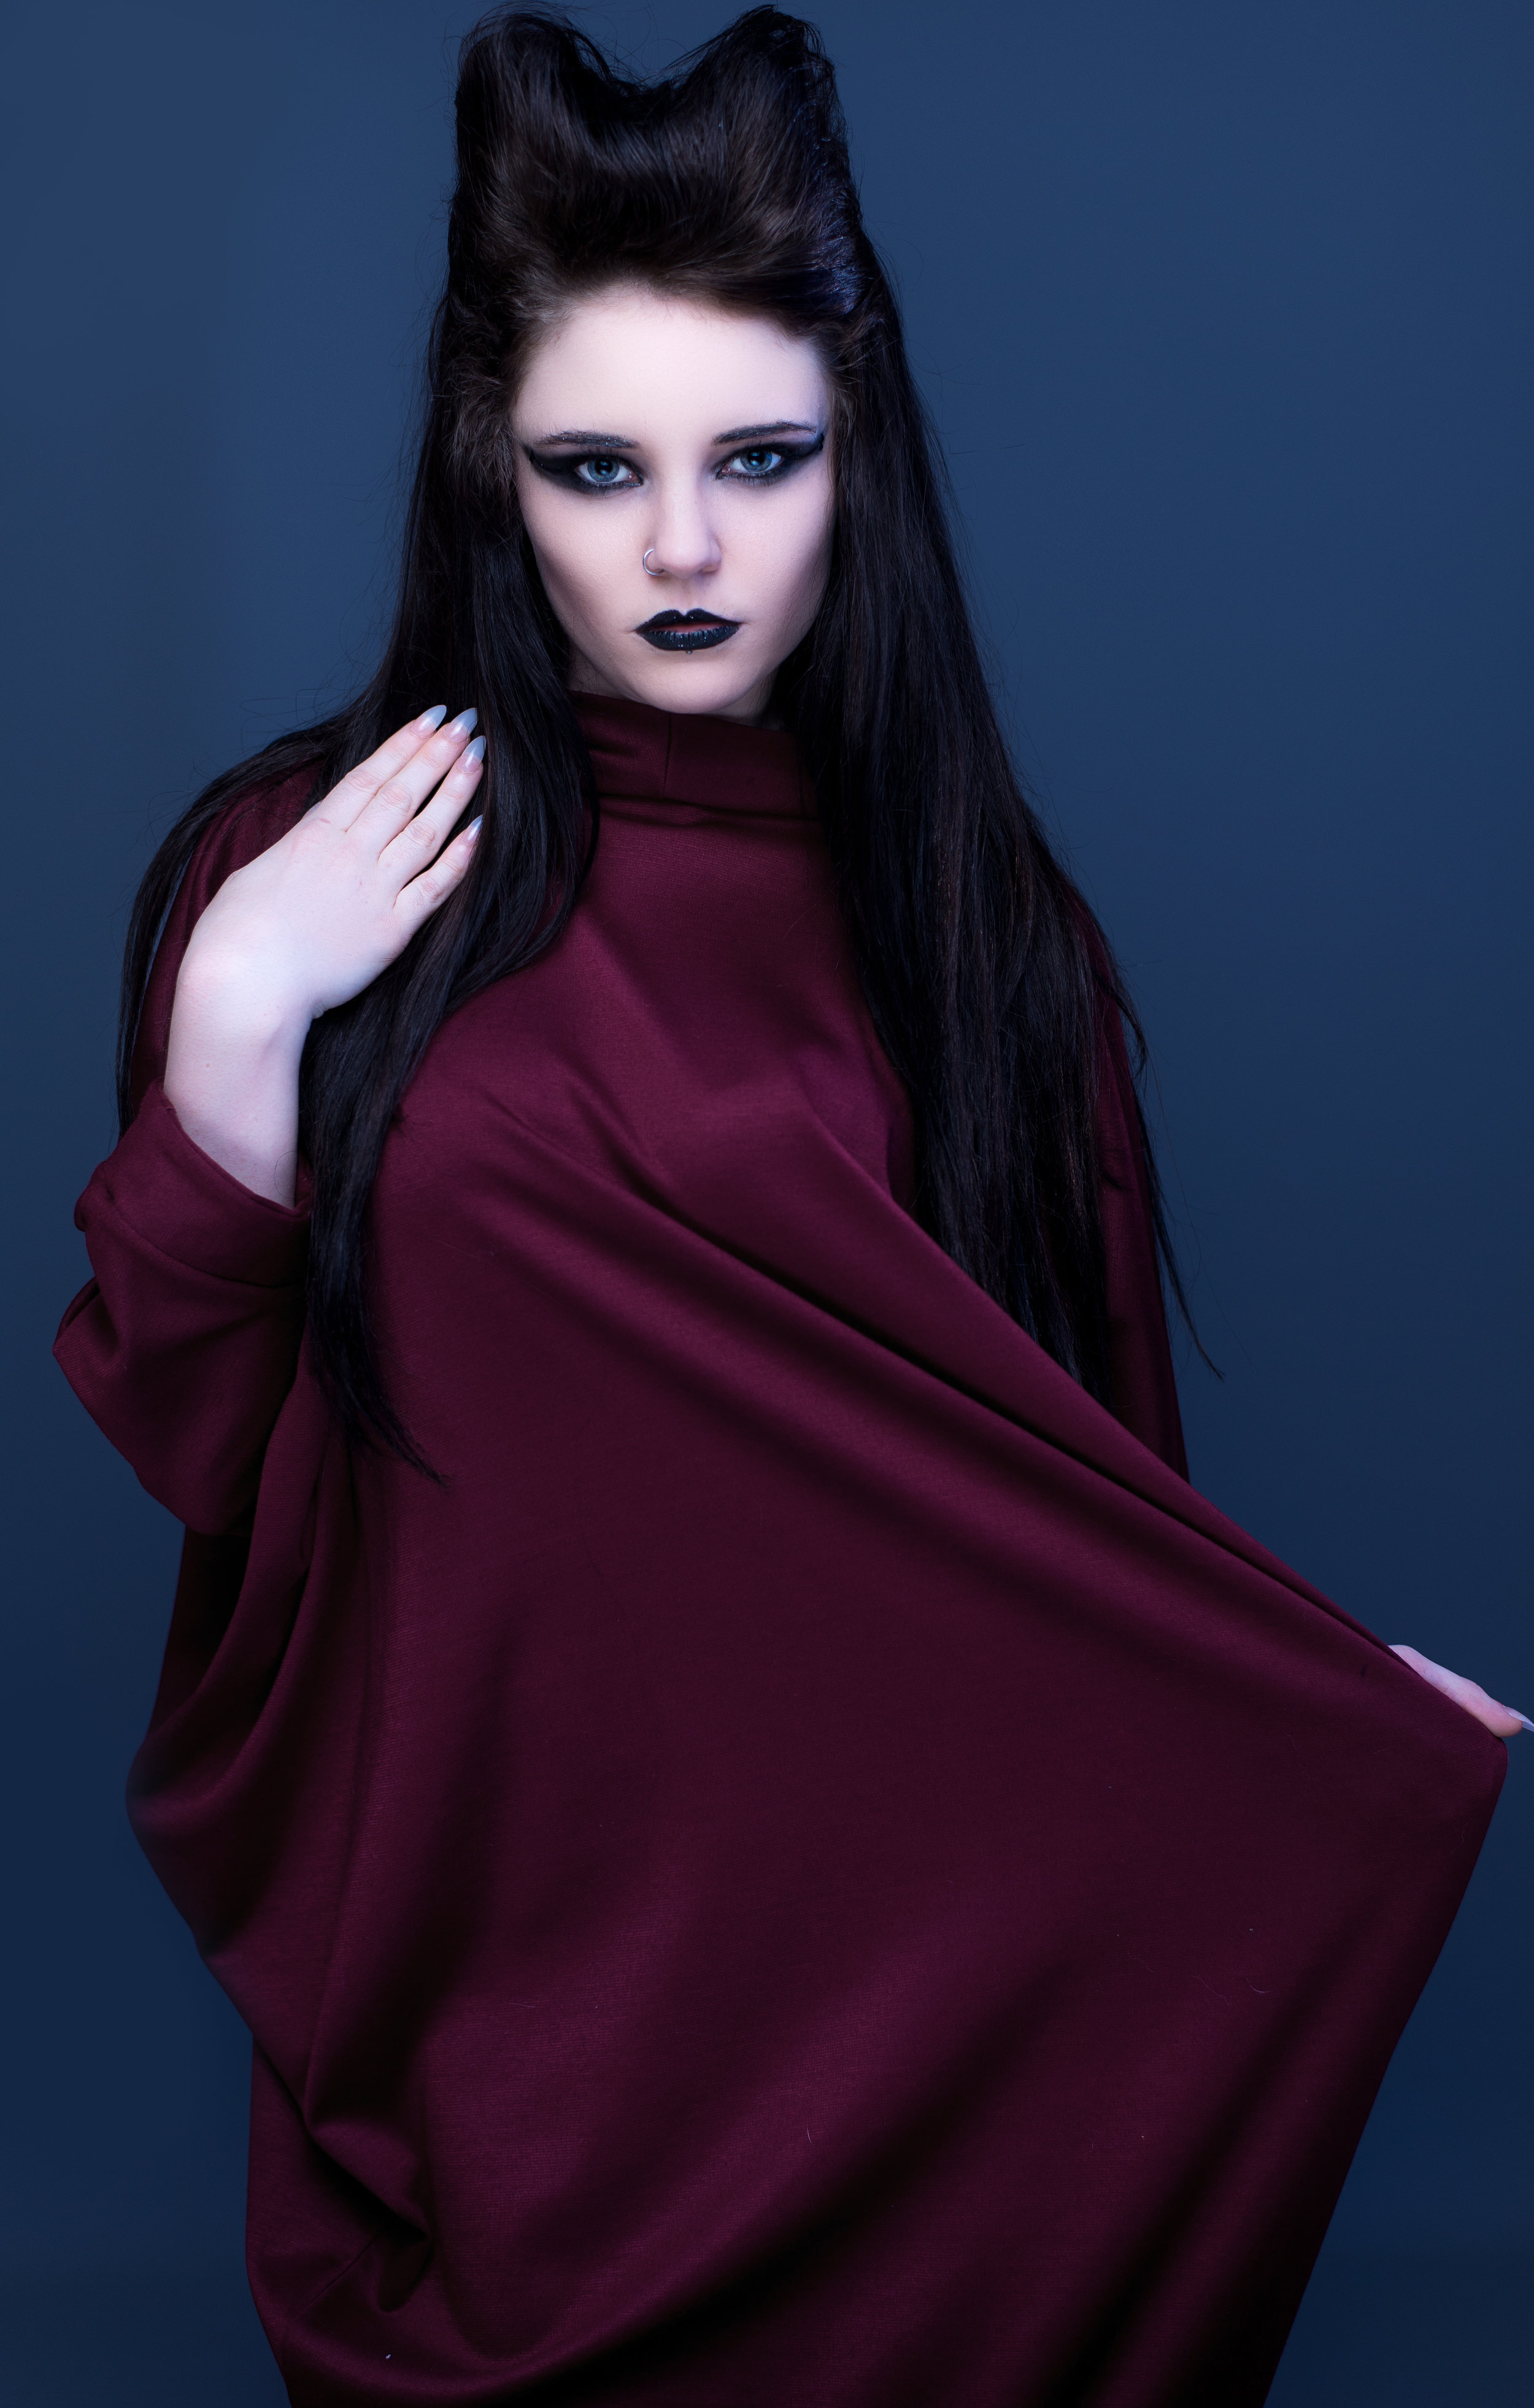 zaramia-ava-zaramiaava-leeds-fashion-designer-ethical-sustainable-tailored-minimalist-aya-burgundy-black-obi-belt-dress-versatile-drape-cowl-styling-studio-womenswear-models-photoshoot-vibrant-14